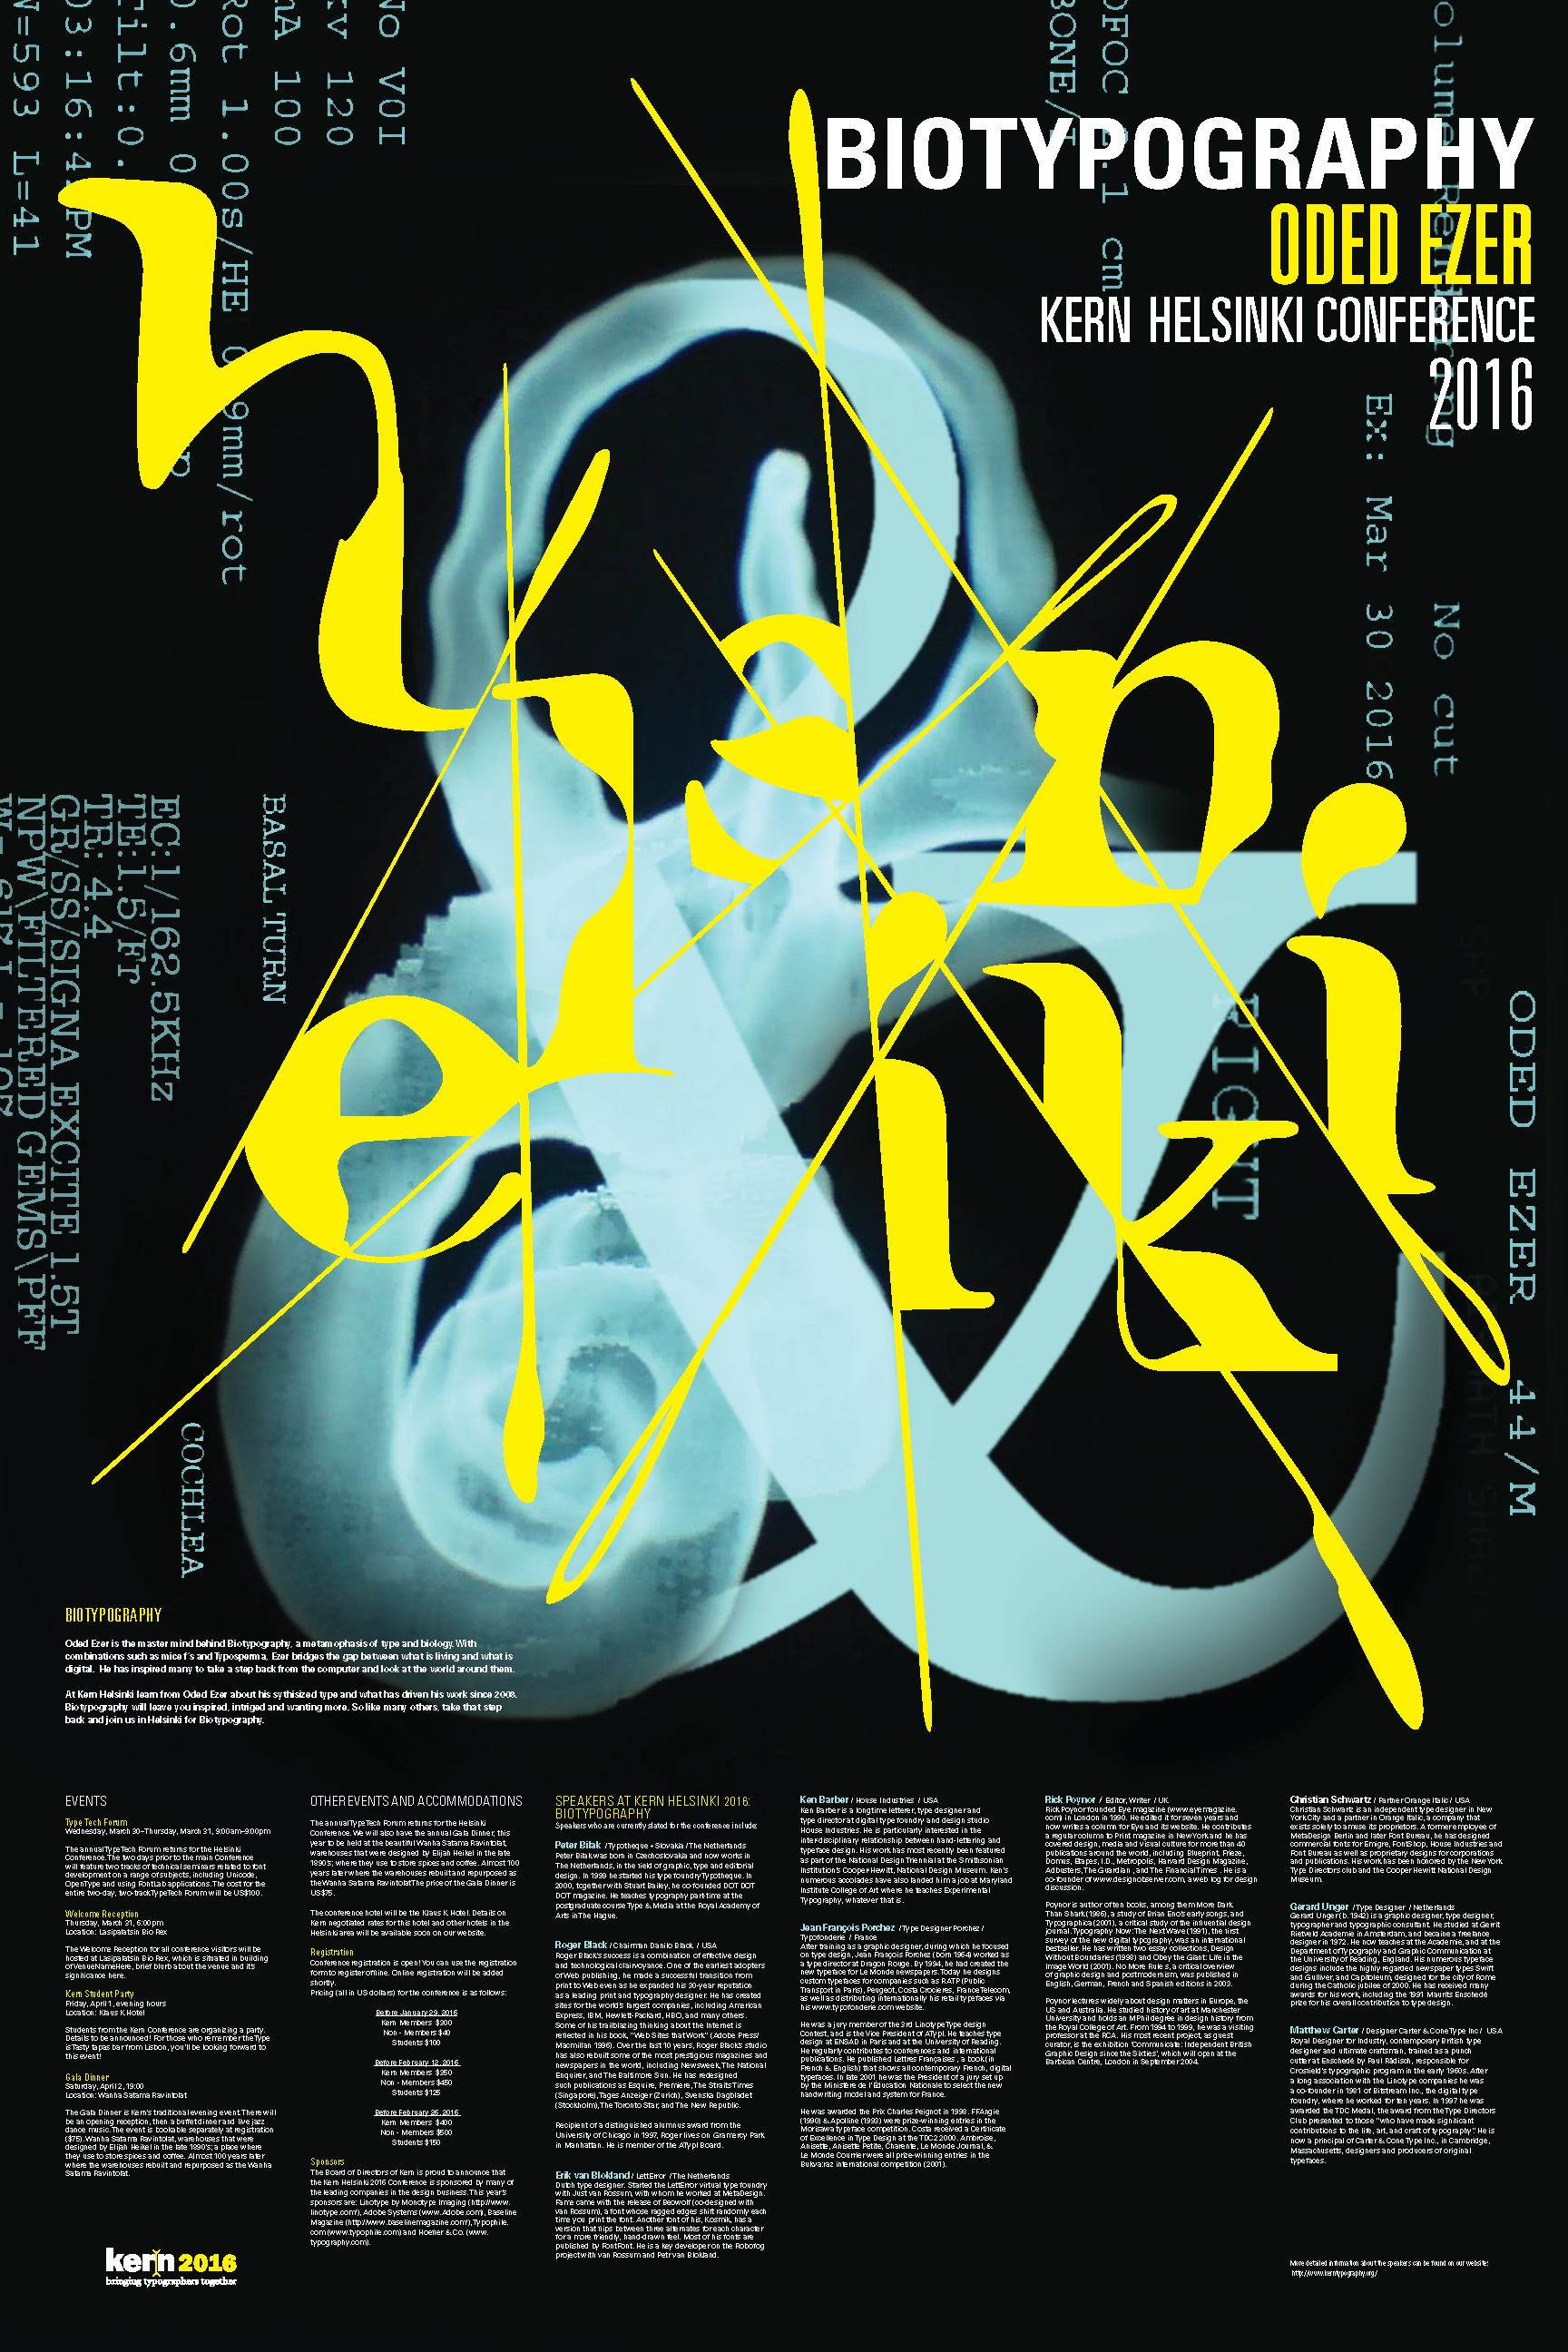 Kern Helsinki 2016 - A conference poster highlighting typography, Oded Ezer, and the beautiful city of Helsinki Finland.